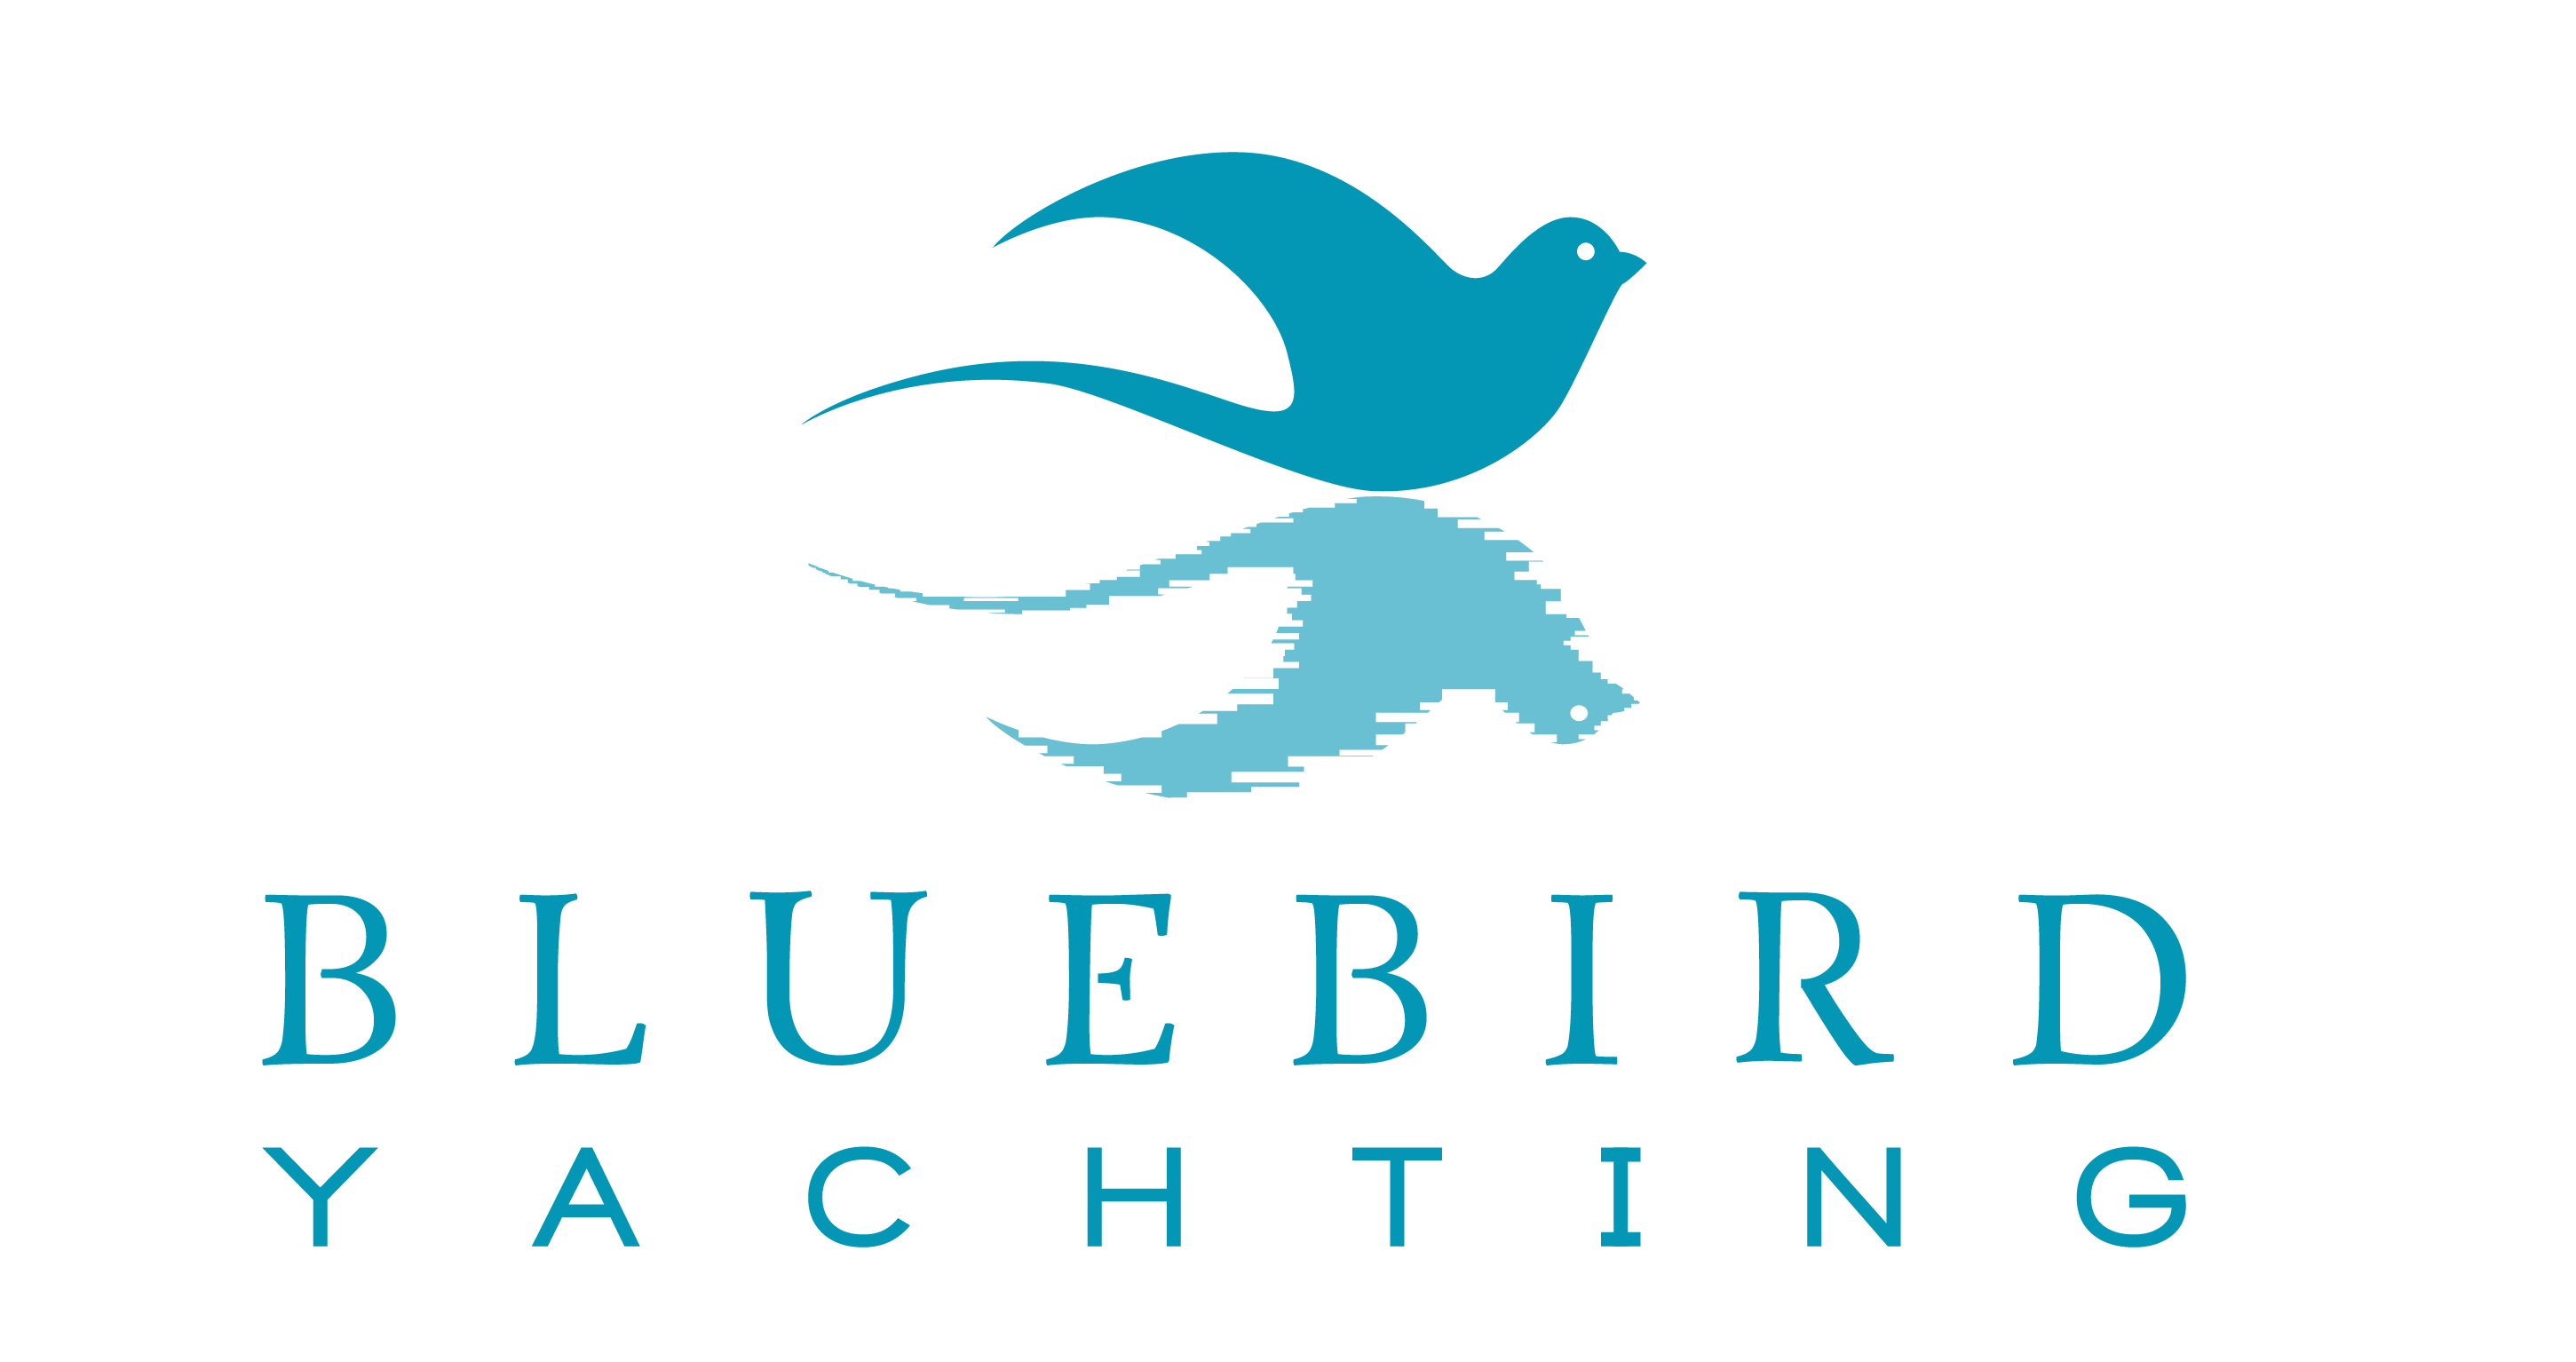 Bluebird Yachting | The Cruising Experience